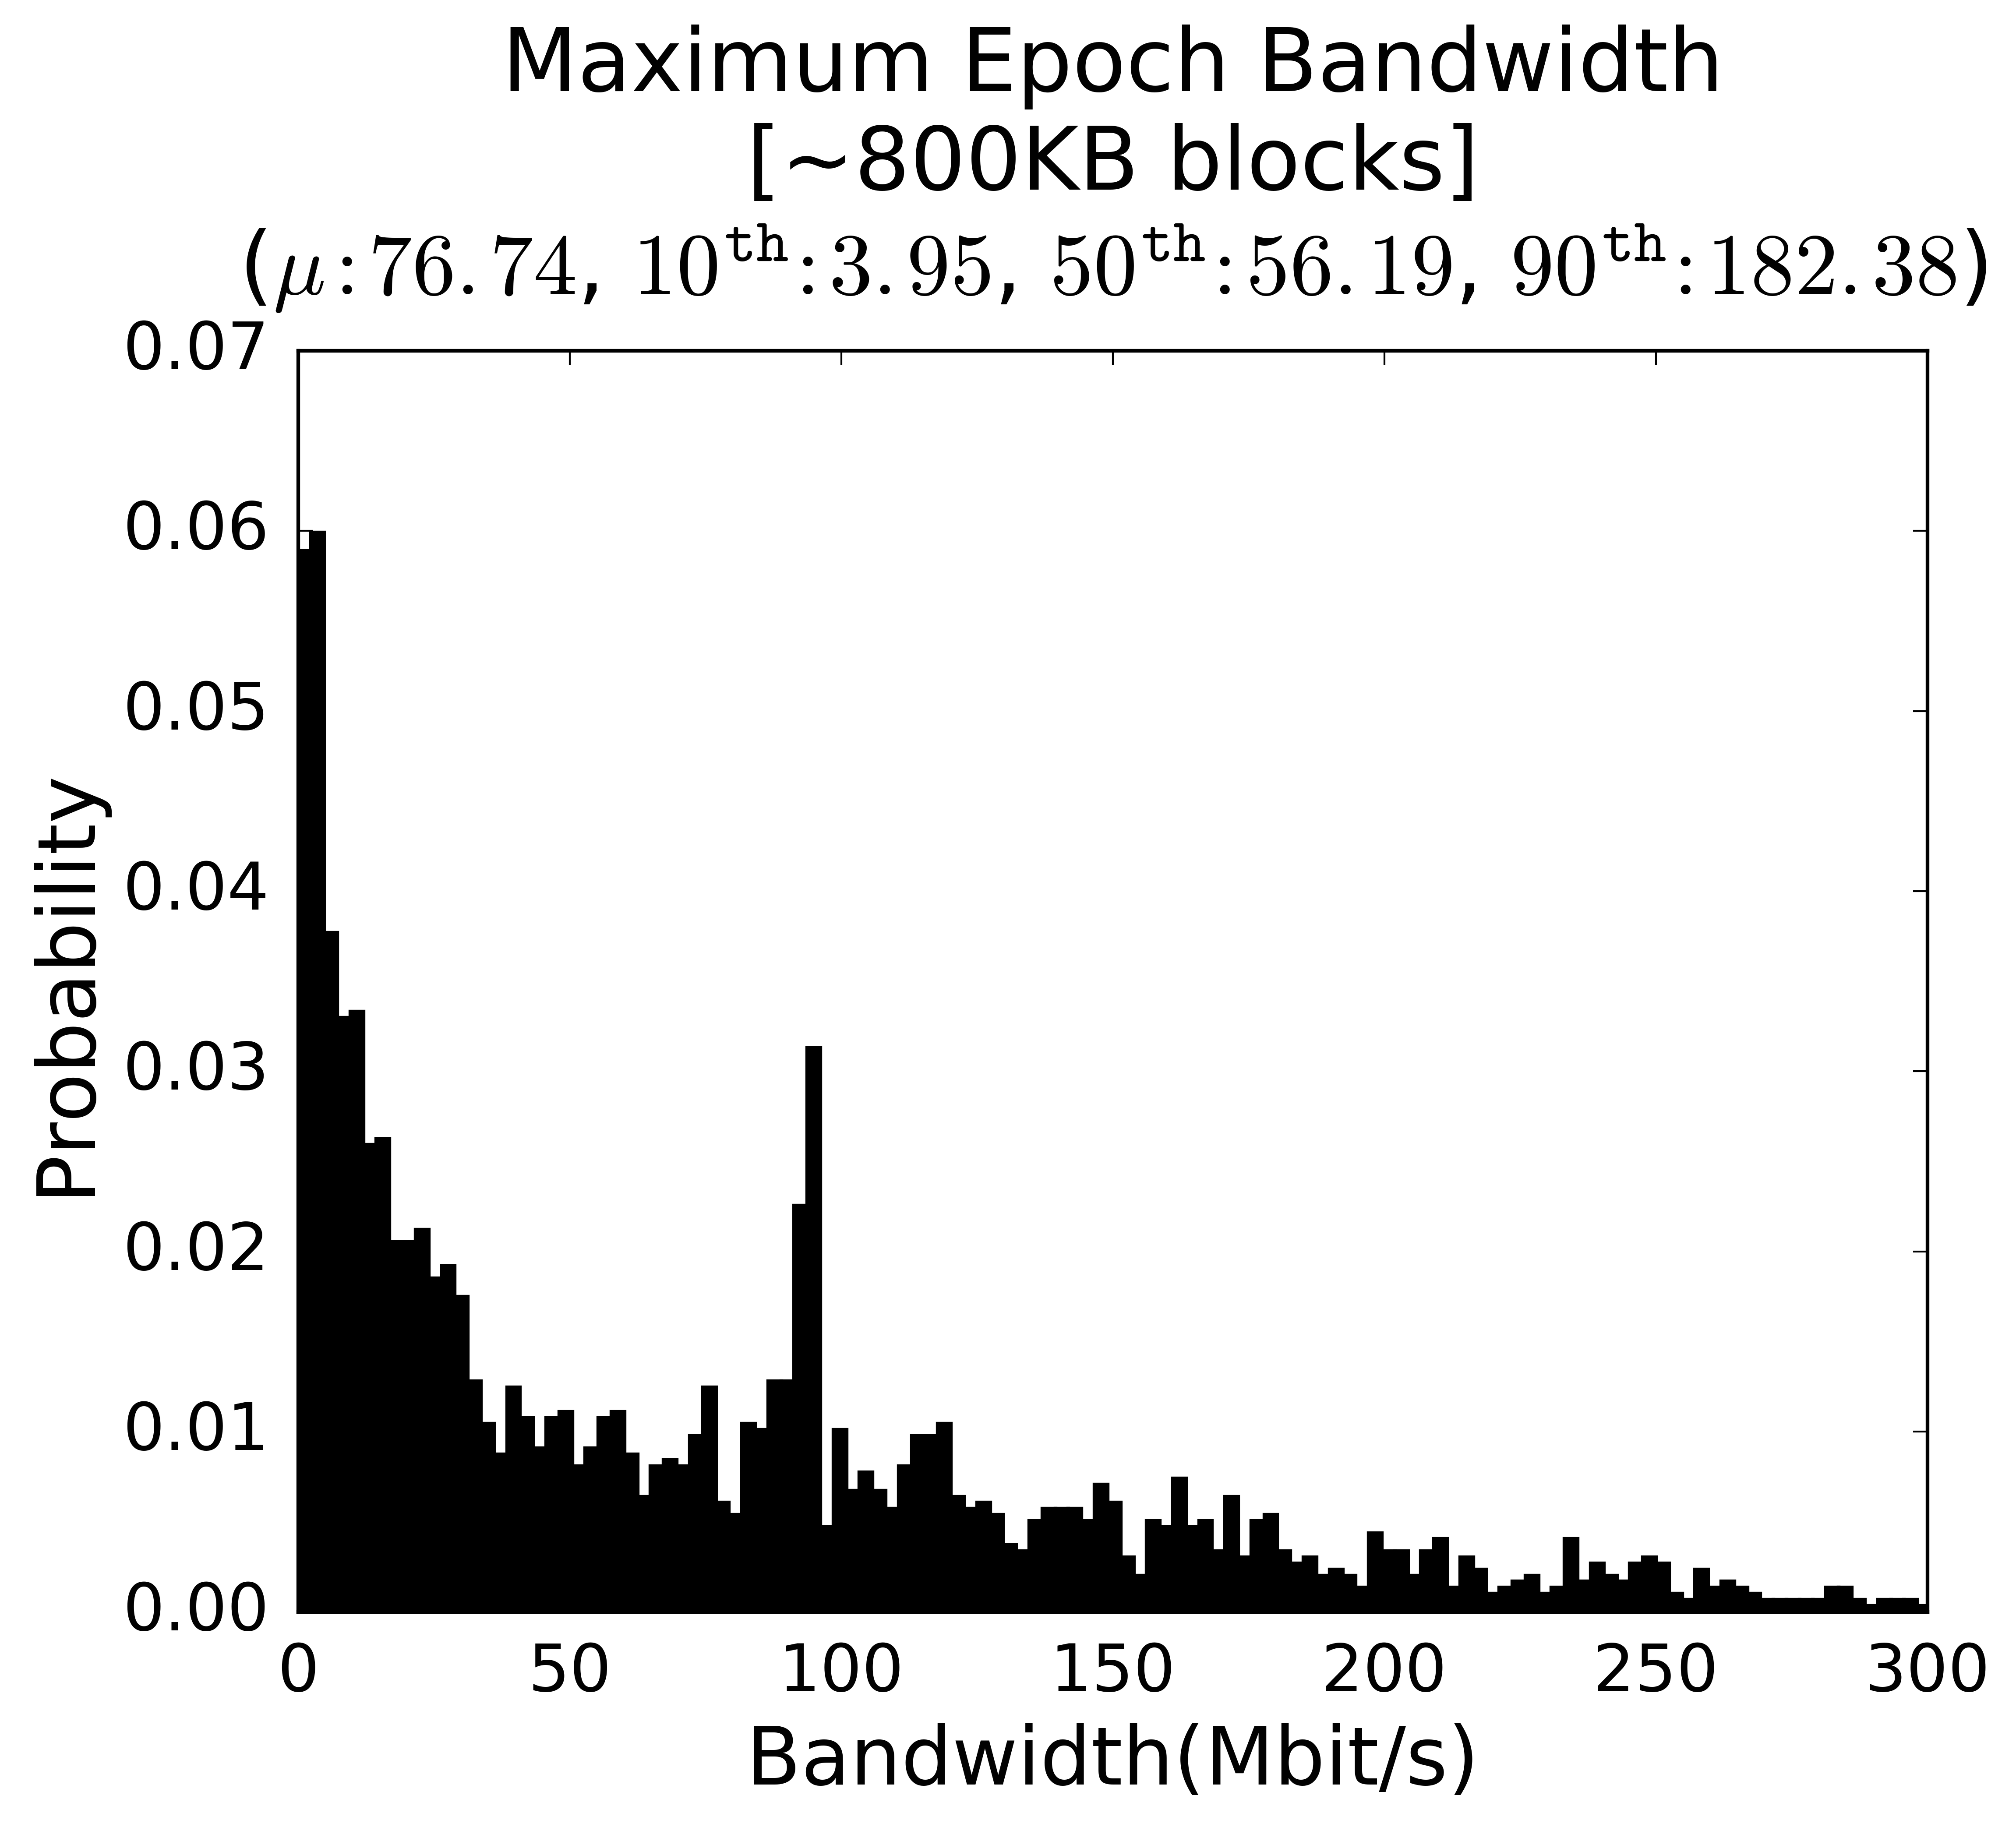 Maximum epoch bandwidth for Bitcoin's IPv4 nodes